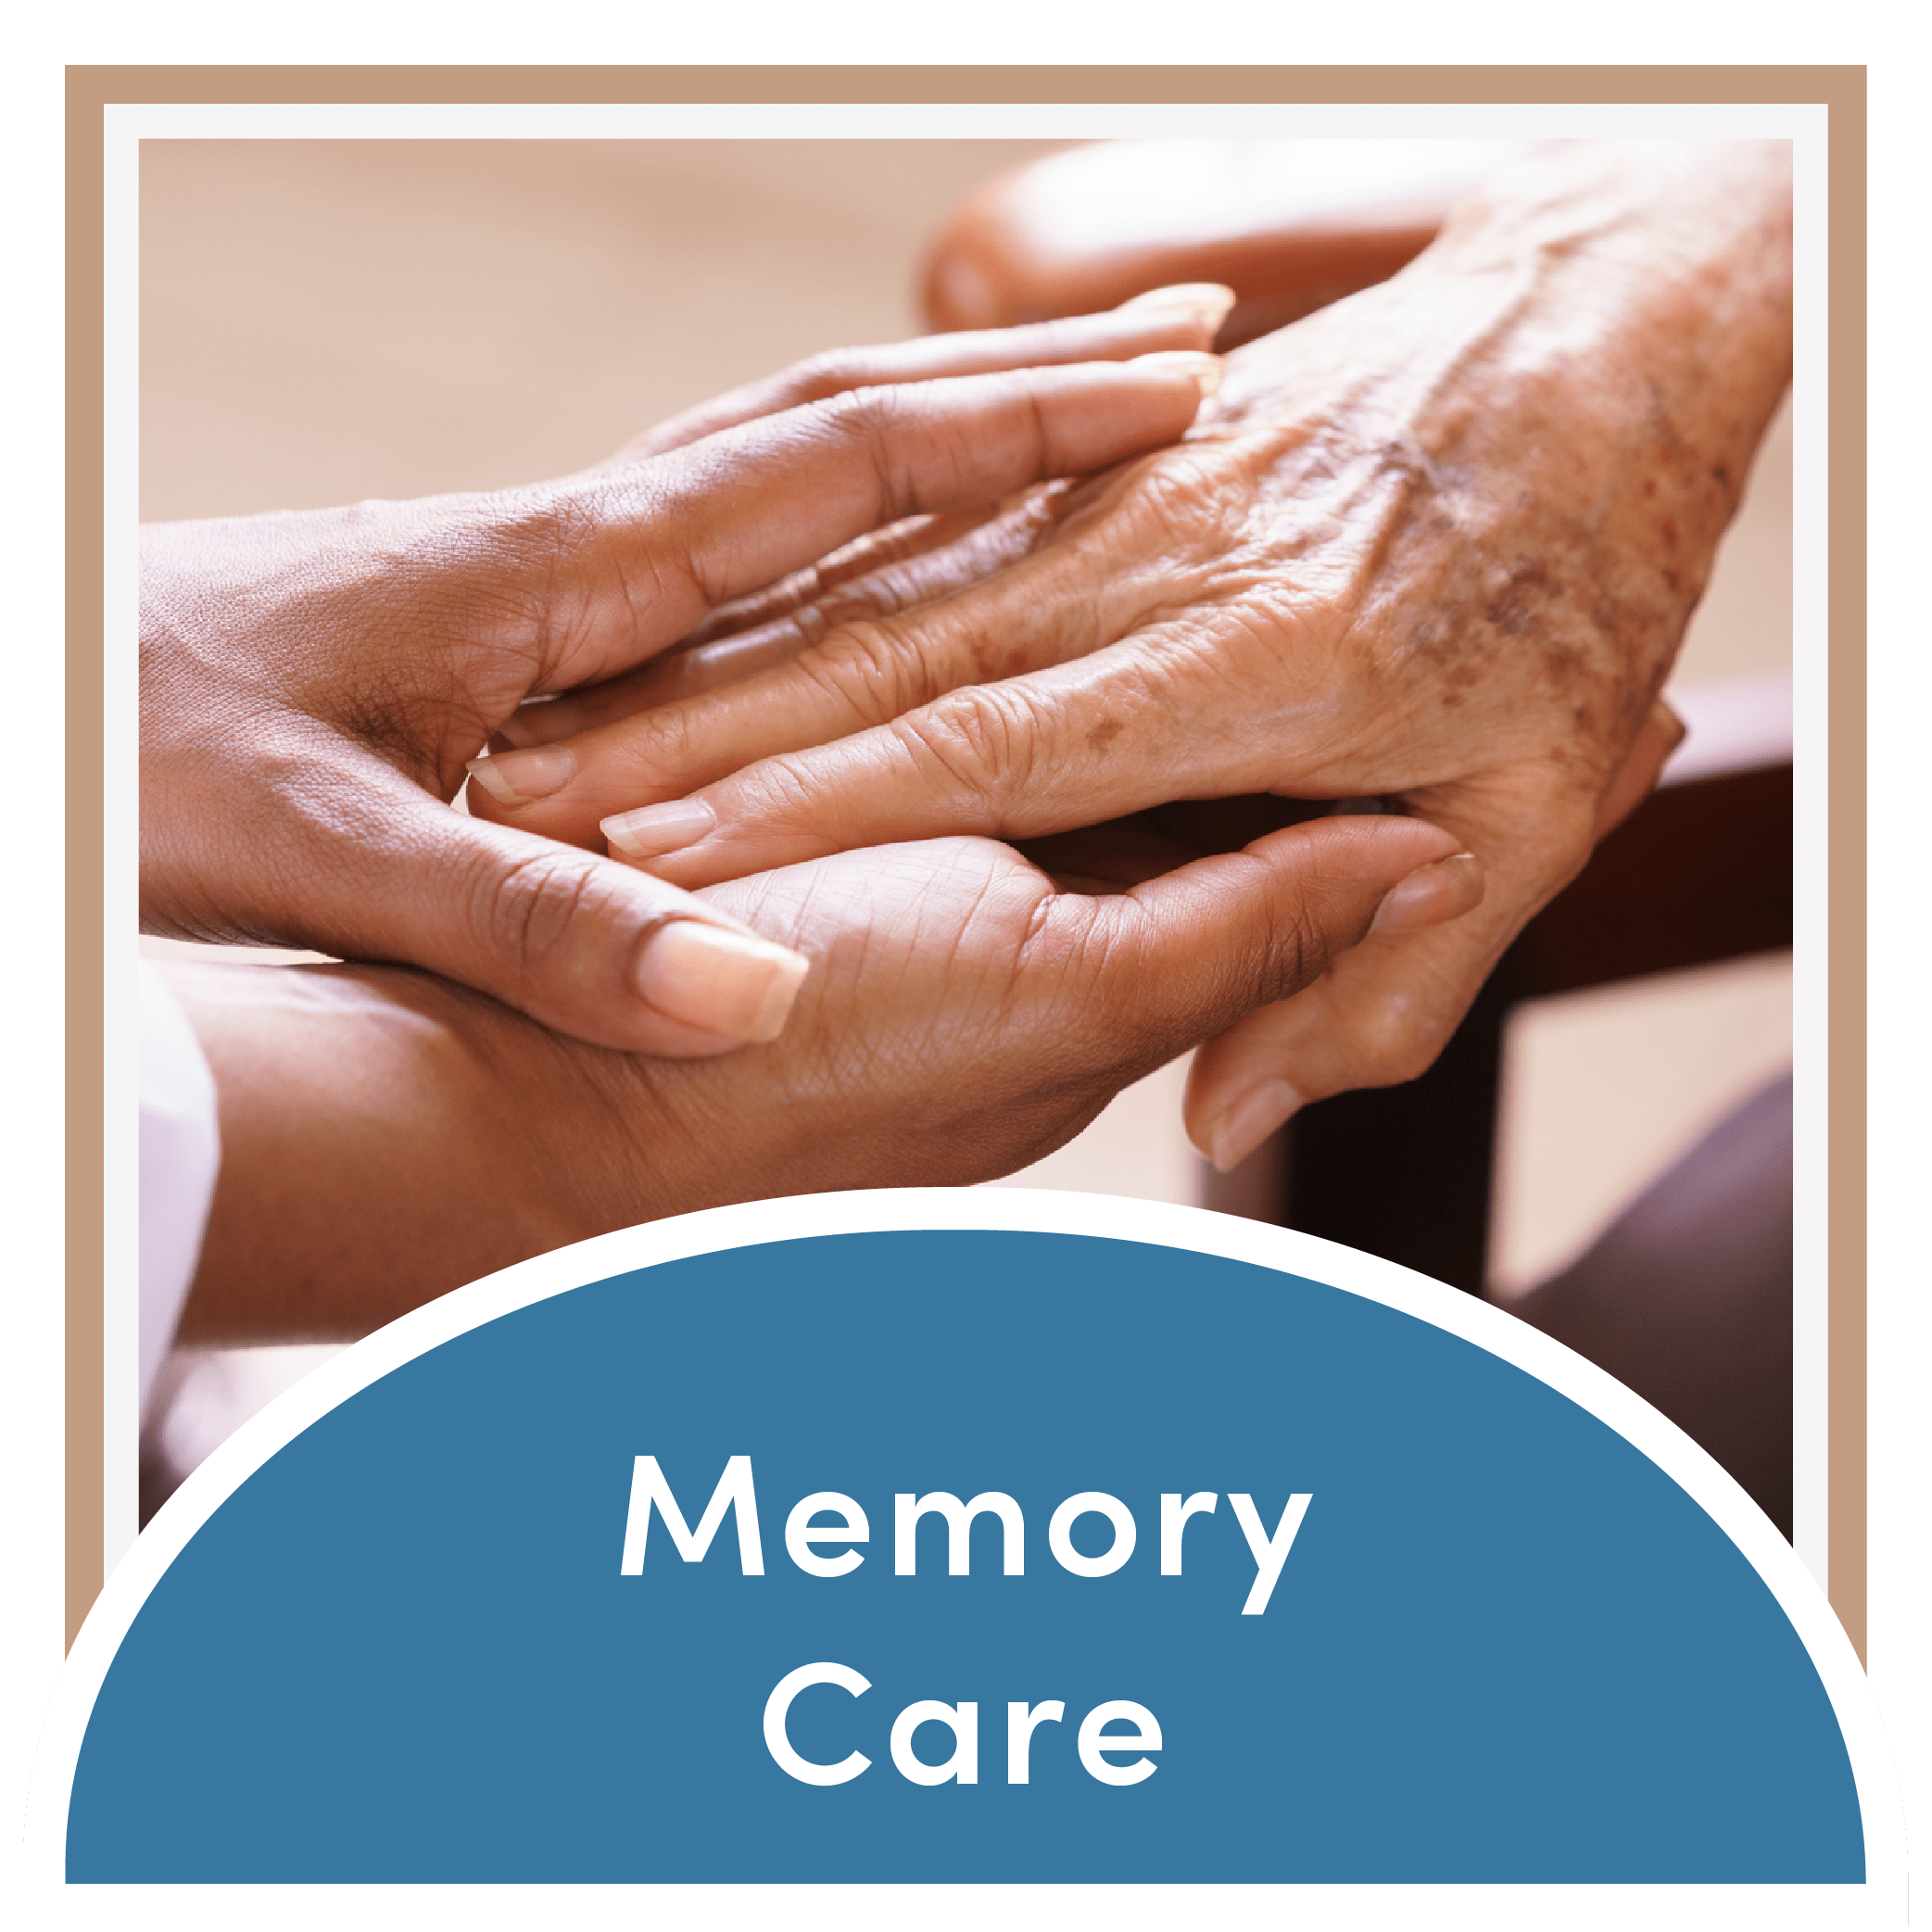 Link to the memory care page of Mountain View Retirement Village in Tucson, Arizona